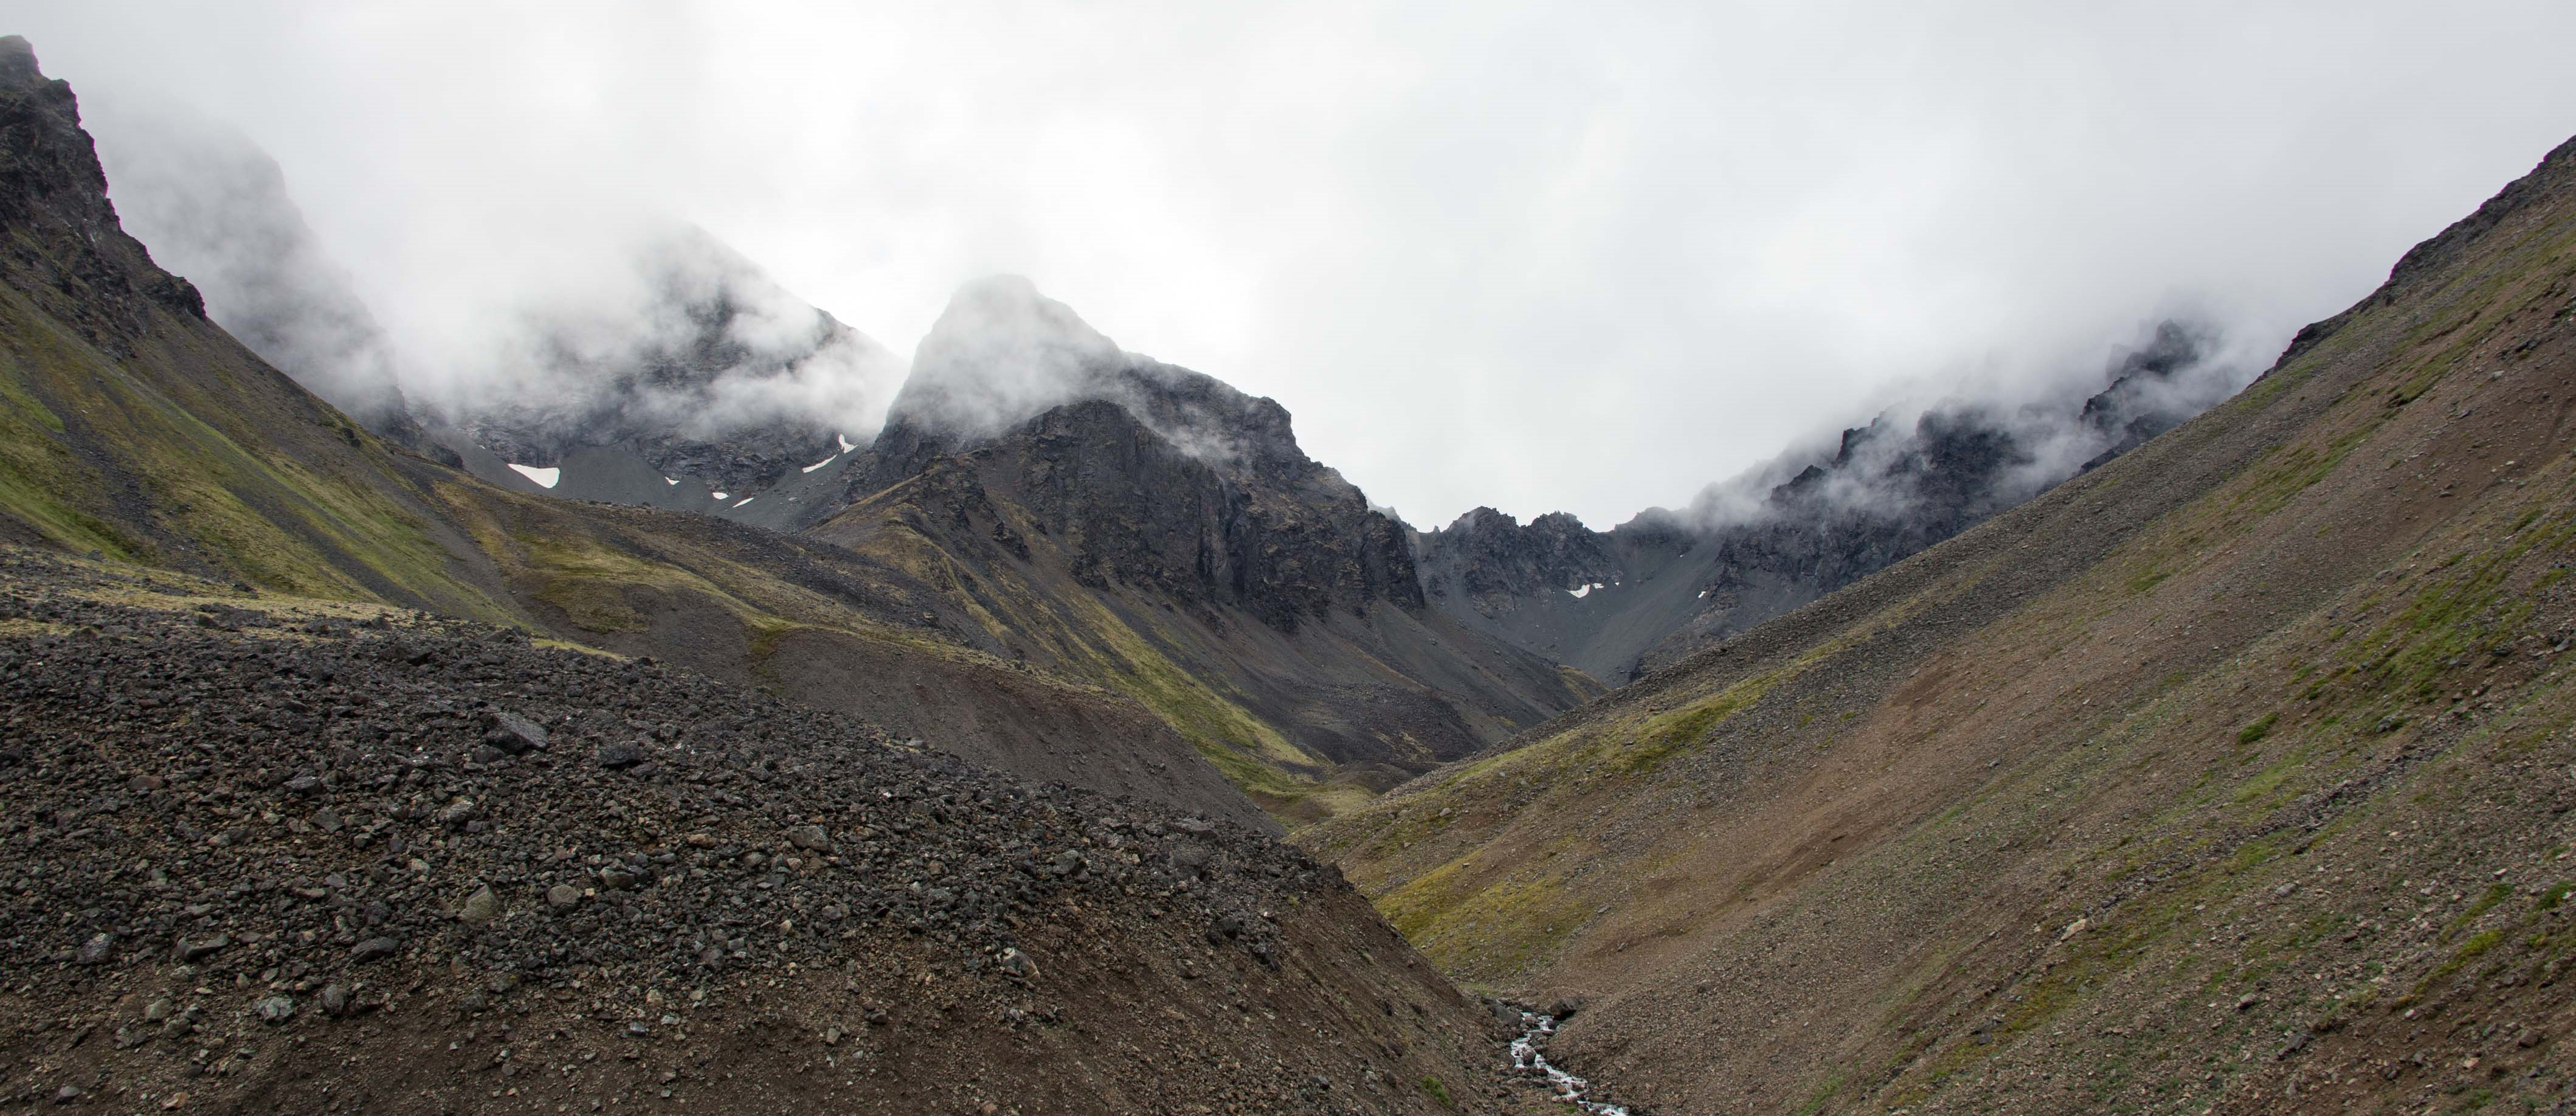 rocky peaks emerge from the clouds in a dramatic valley